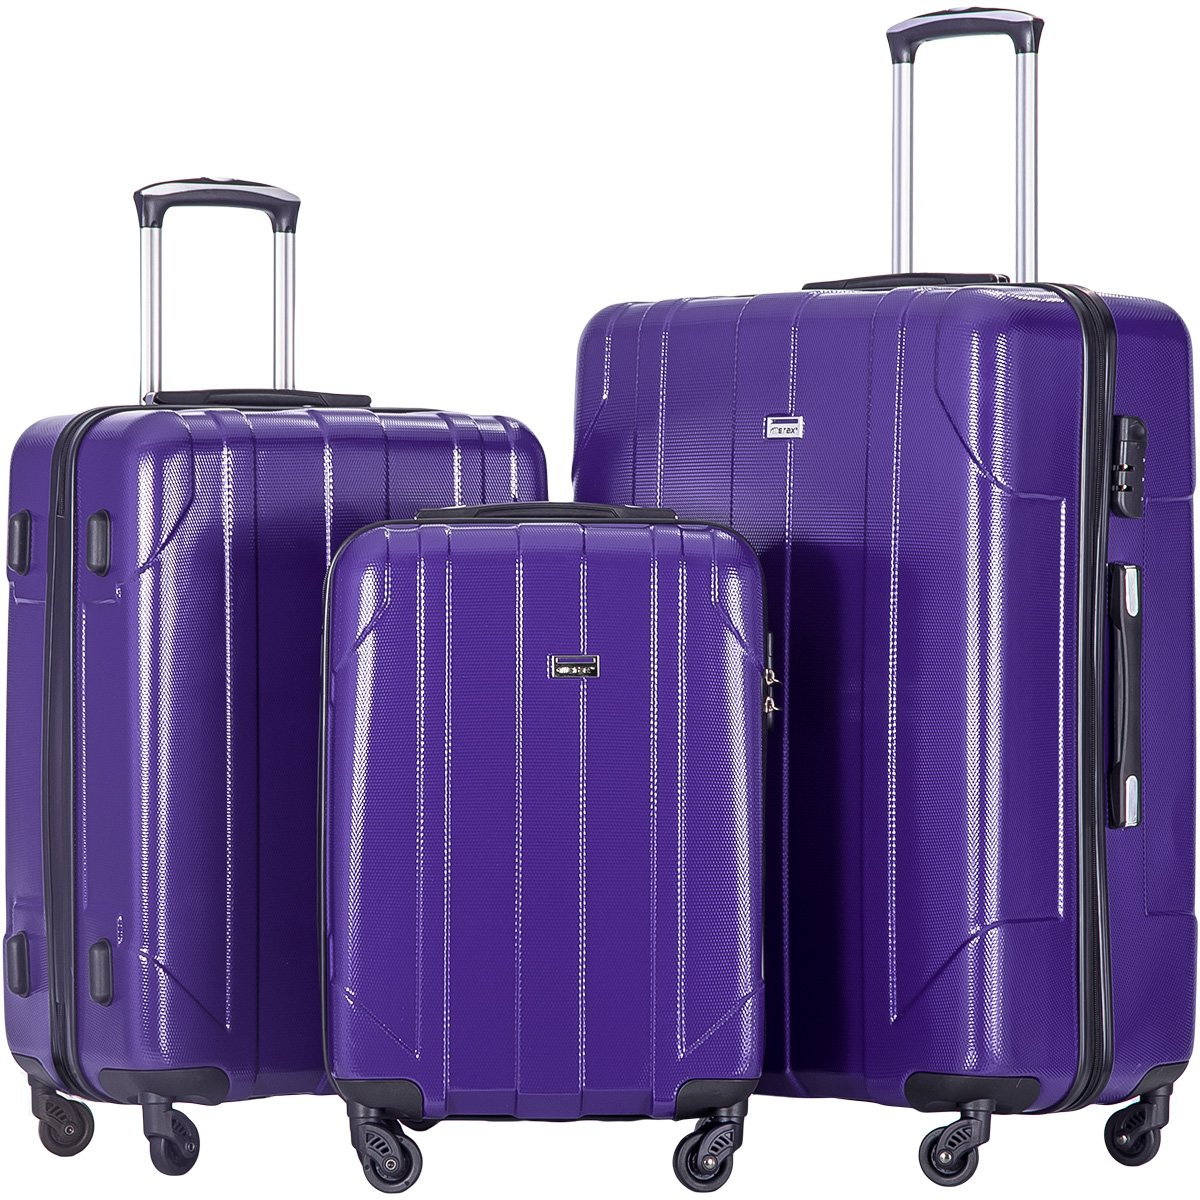 Merax 3 Piece P.E.T Luggage Set Eco-friendly Light Weight Travel Suitcase (Purple) by Merax